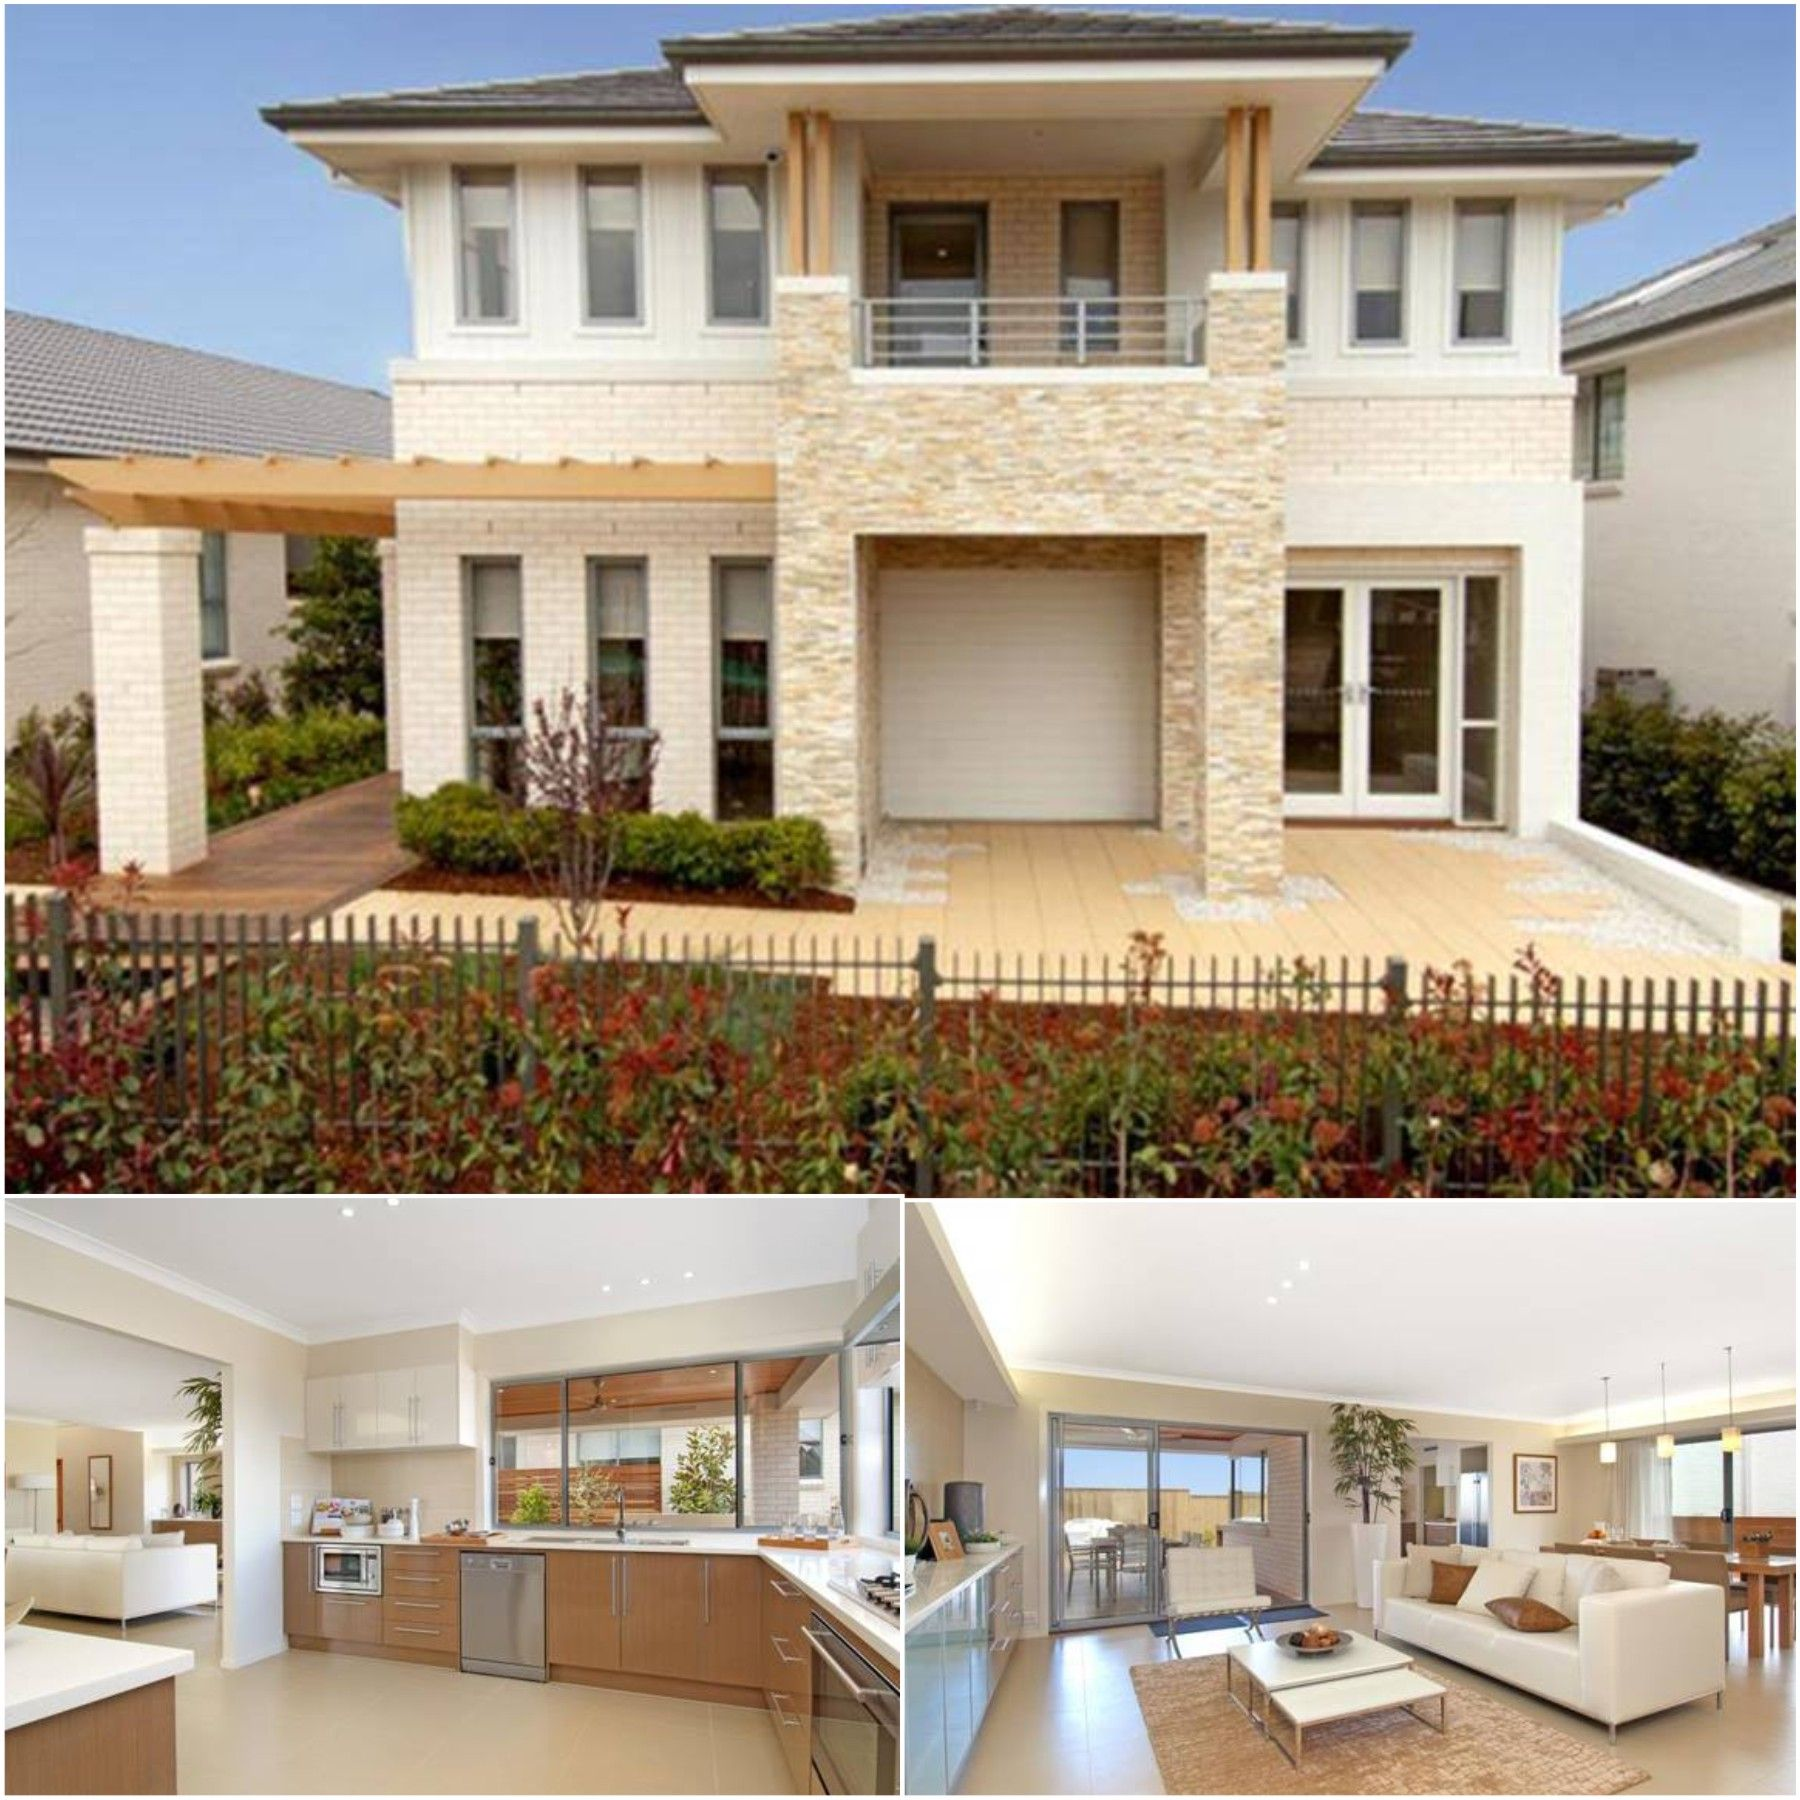 Indulge in this striking storey house designed for corner blocks from sekisuihouse visit our gledswoodhills village newhome moderndesign luxury also rh pinterest